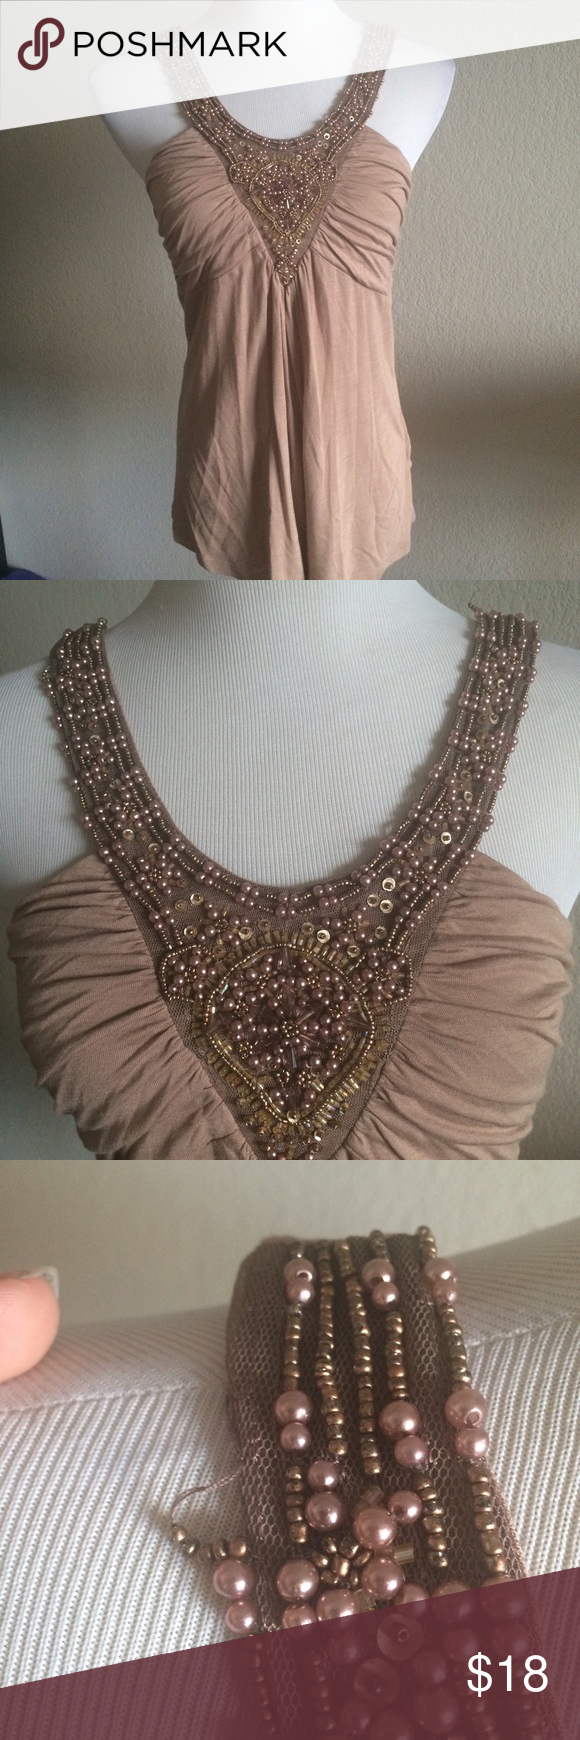 Forever 21 Beaded Taupe Sleeveless Top Art Deco Gorgeous tank from Forever 21 with glamorous beading. Only worn 2 times, cared for impeccably, never dried in a machine and is in perfect condition. The beads are tied off in a way that makes it look a bit like they are loose, but they are secure and in like-new condition; see photos, no beads lost!  Fits true to size for F21. Juniors sizing. Jersey stretch material. Comfy and flattering. Forever 21 Tops Tank Tops